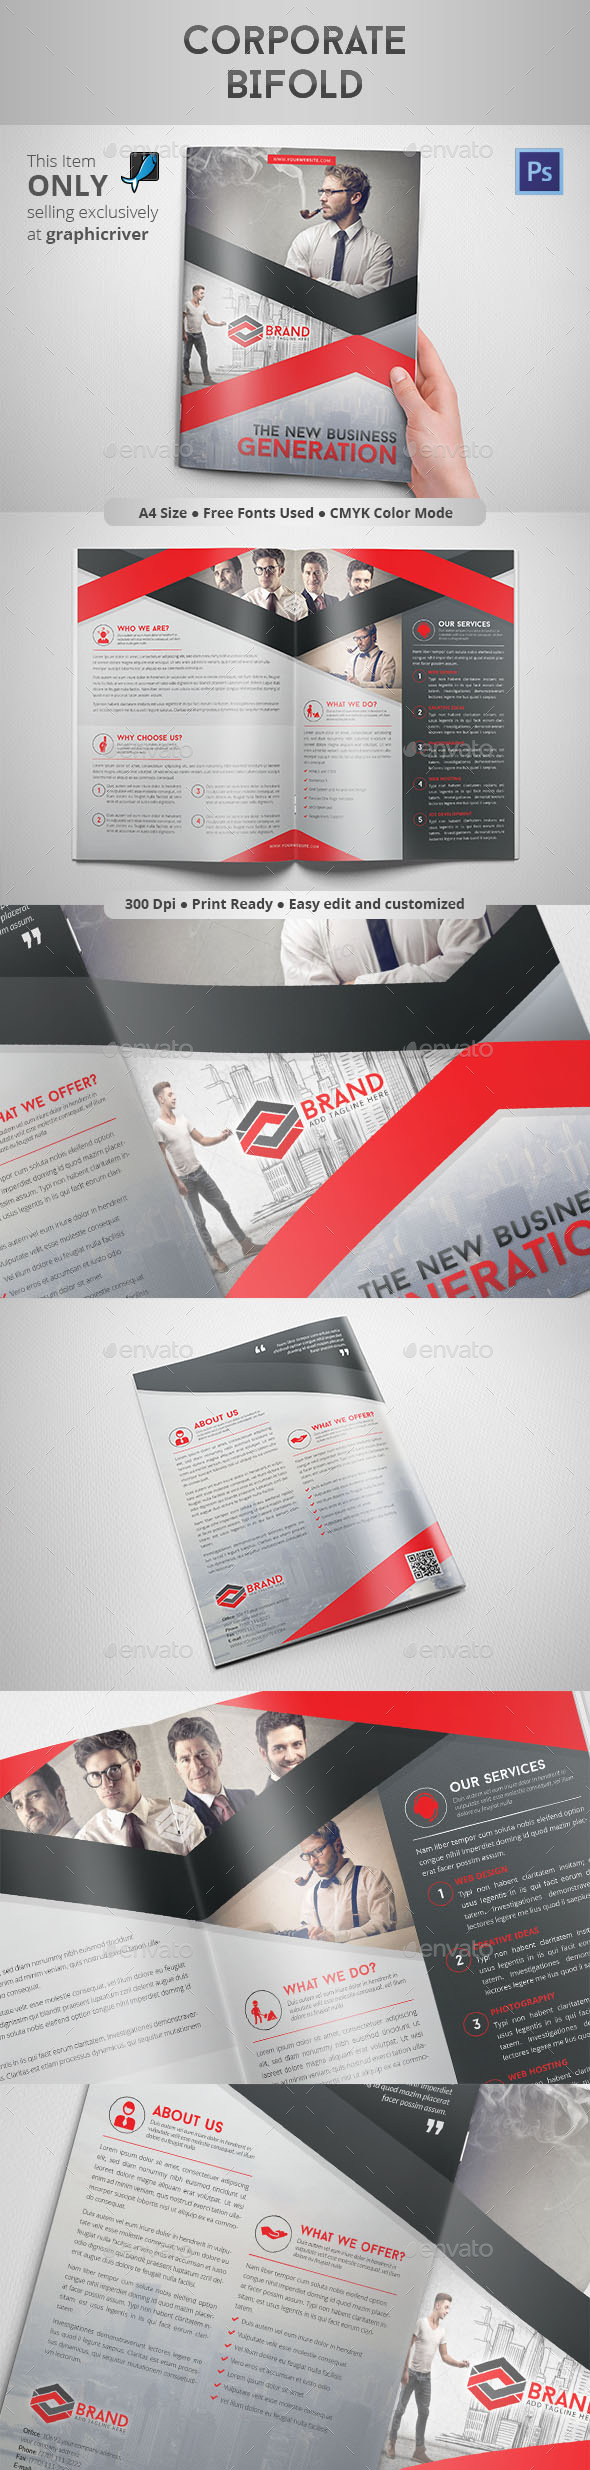 GraphicRiver Corporate Bifold 8836339